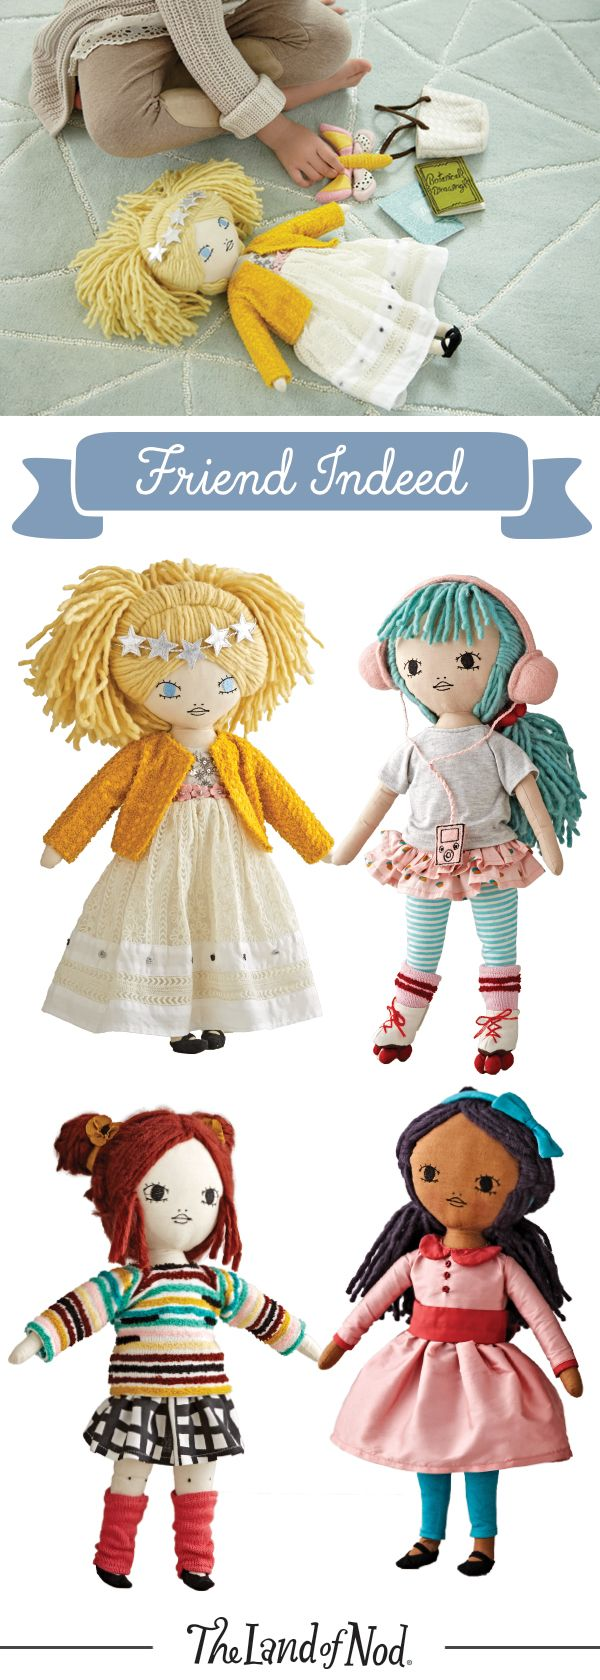 True friends are there to the end. The same could be said for our Friend Indeed Doll. With her own unique style, each doll is a reminder to be true to who you are, and to never be afraid to stand out. So be unique. Be yourself. And you're sure to find a friend, indeed.